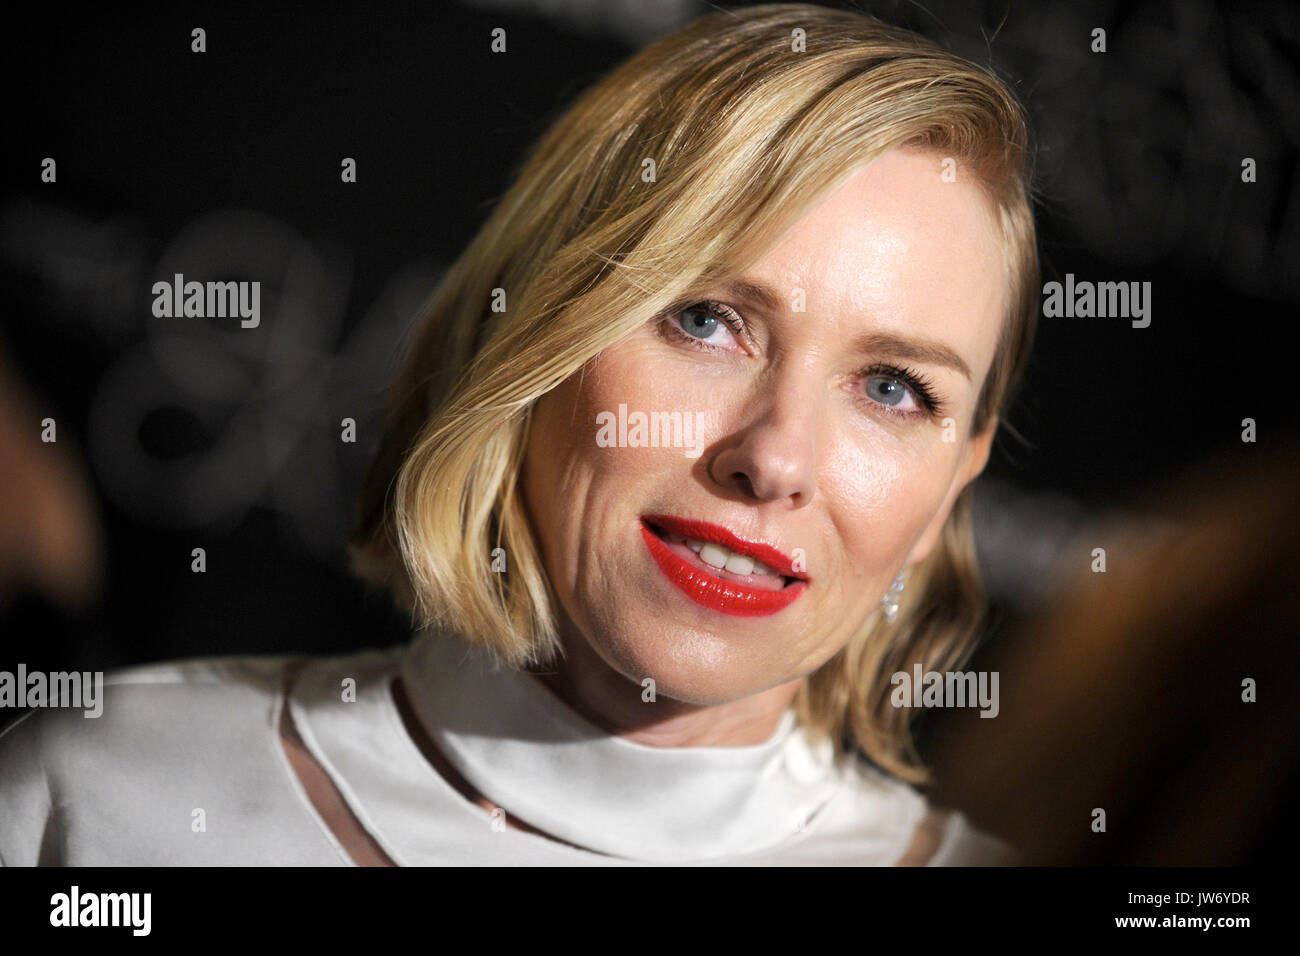 Naomi Watts assiste 'il castello di vetro' new york proiezione al Teatro sva il 9 agosto 2017 a New York City. Foto Stock